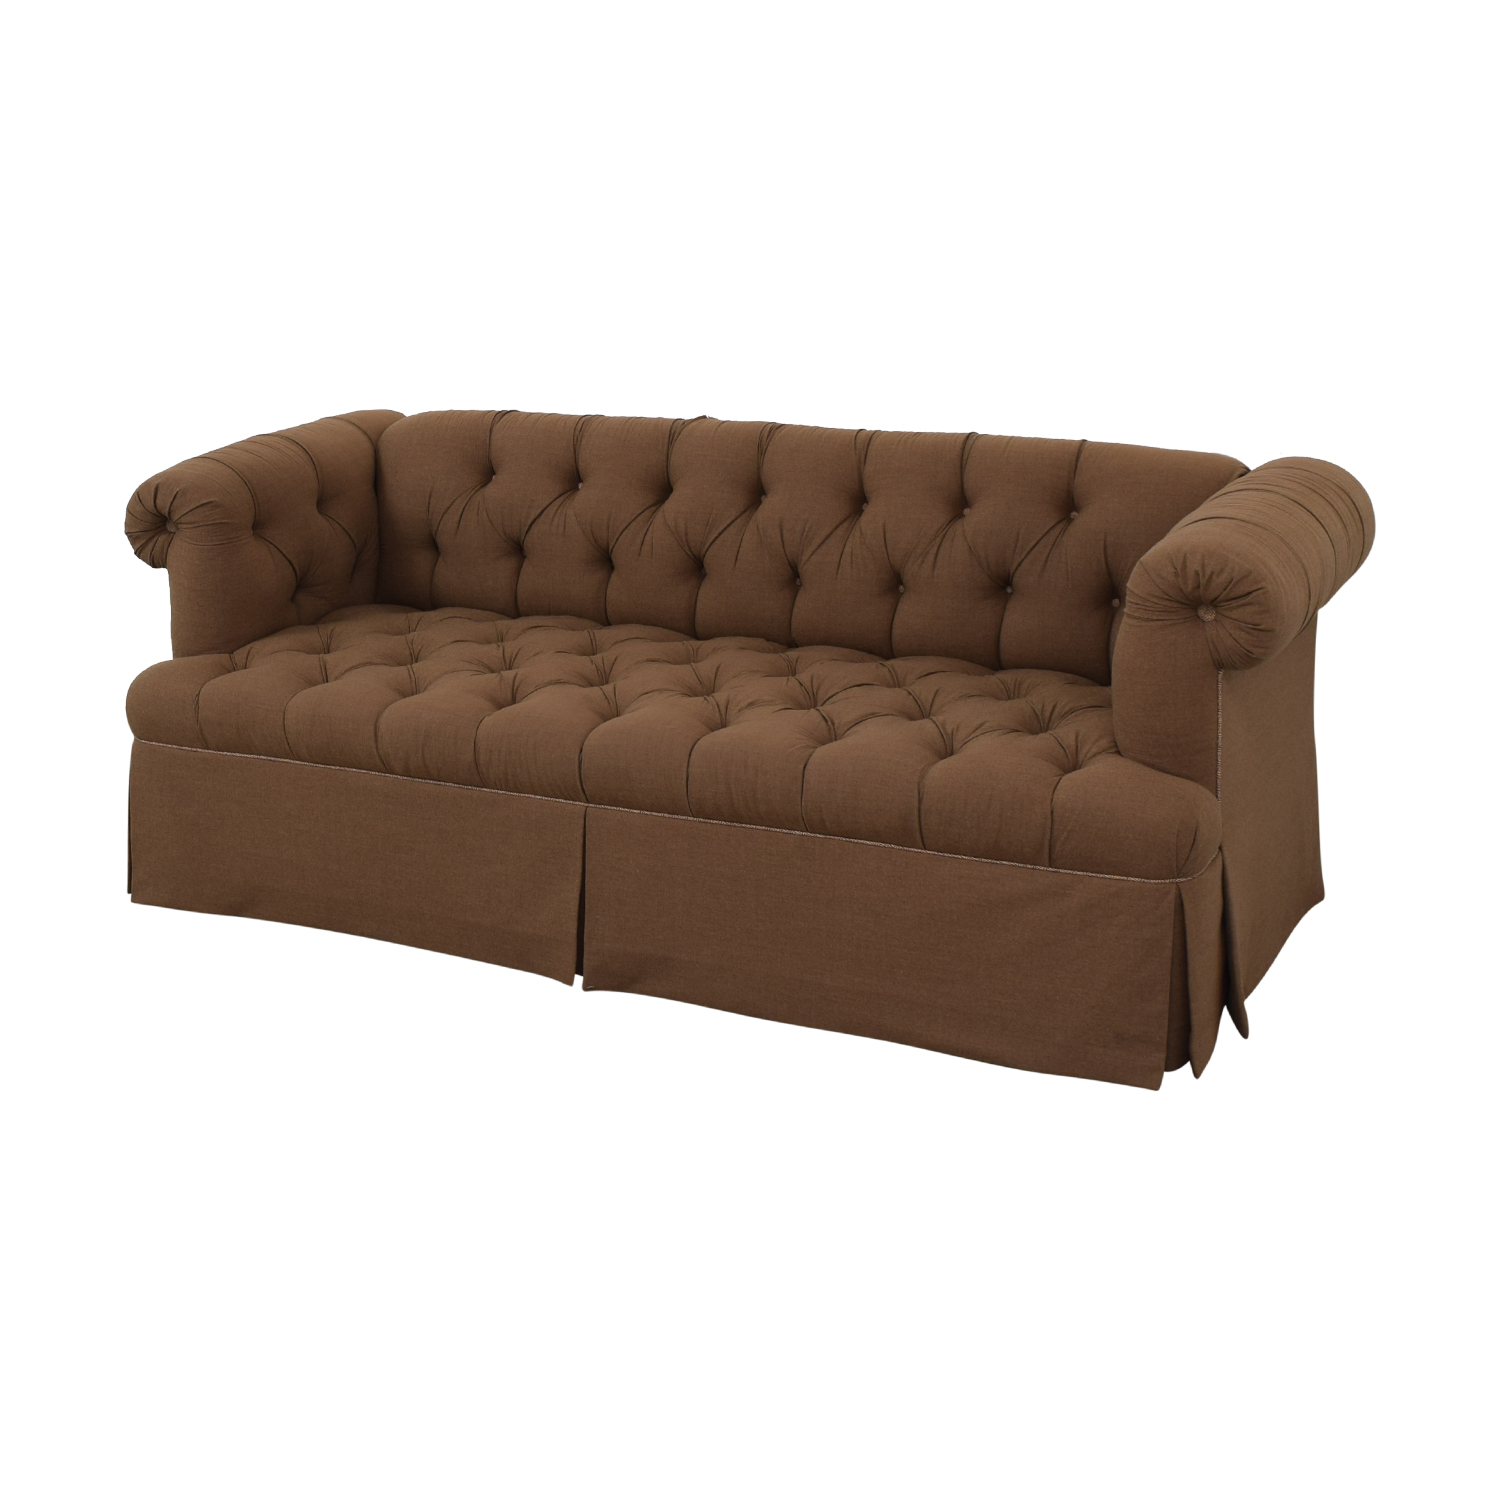 Chesterfield Sofa 74 Off Lewis Mittman Lewis Mittman Chesterfield Sofa Sofas